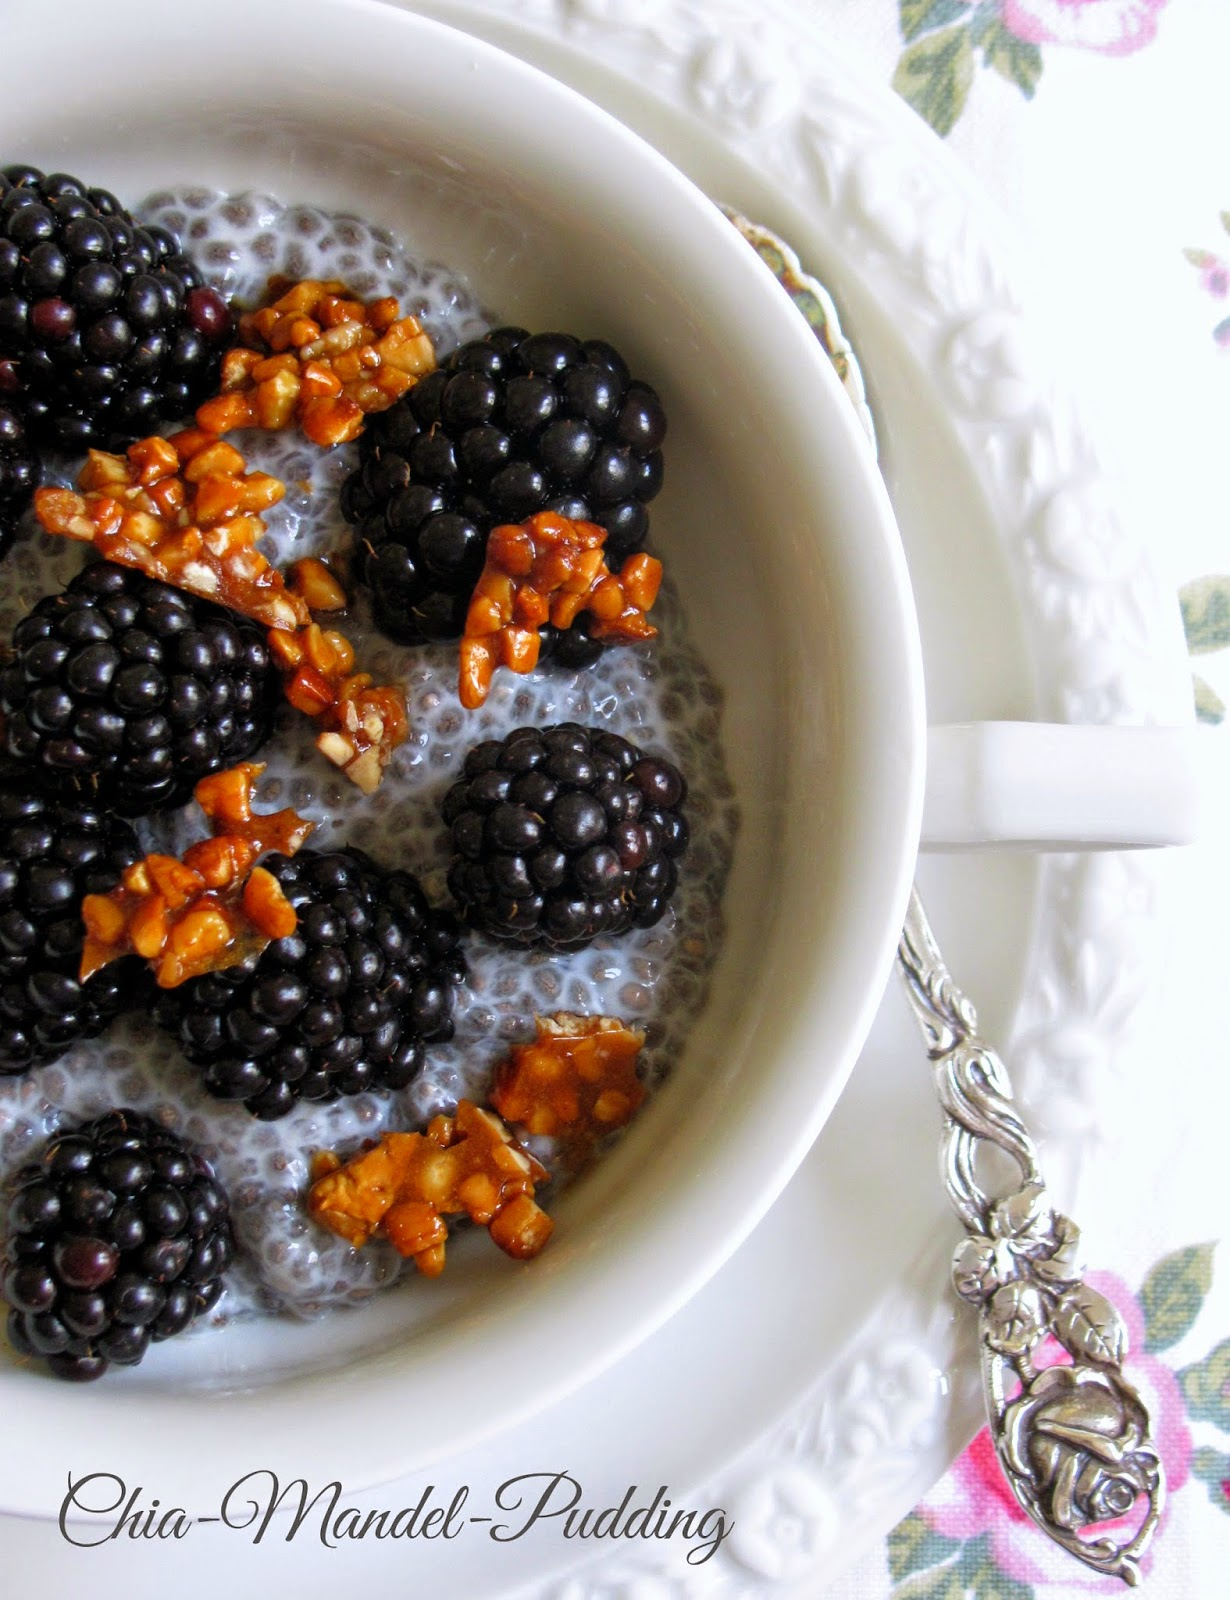 tra dolce ed amaro achtung zu gesund chia mandel pudding mit brombeeren. Black Bedroom Furniture Sets. Home Design Ideas